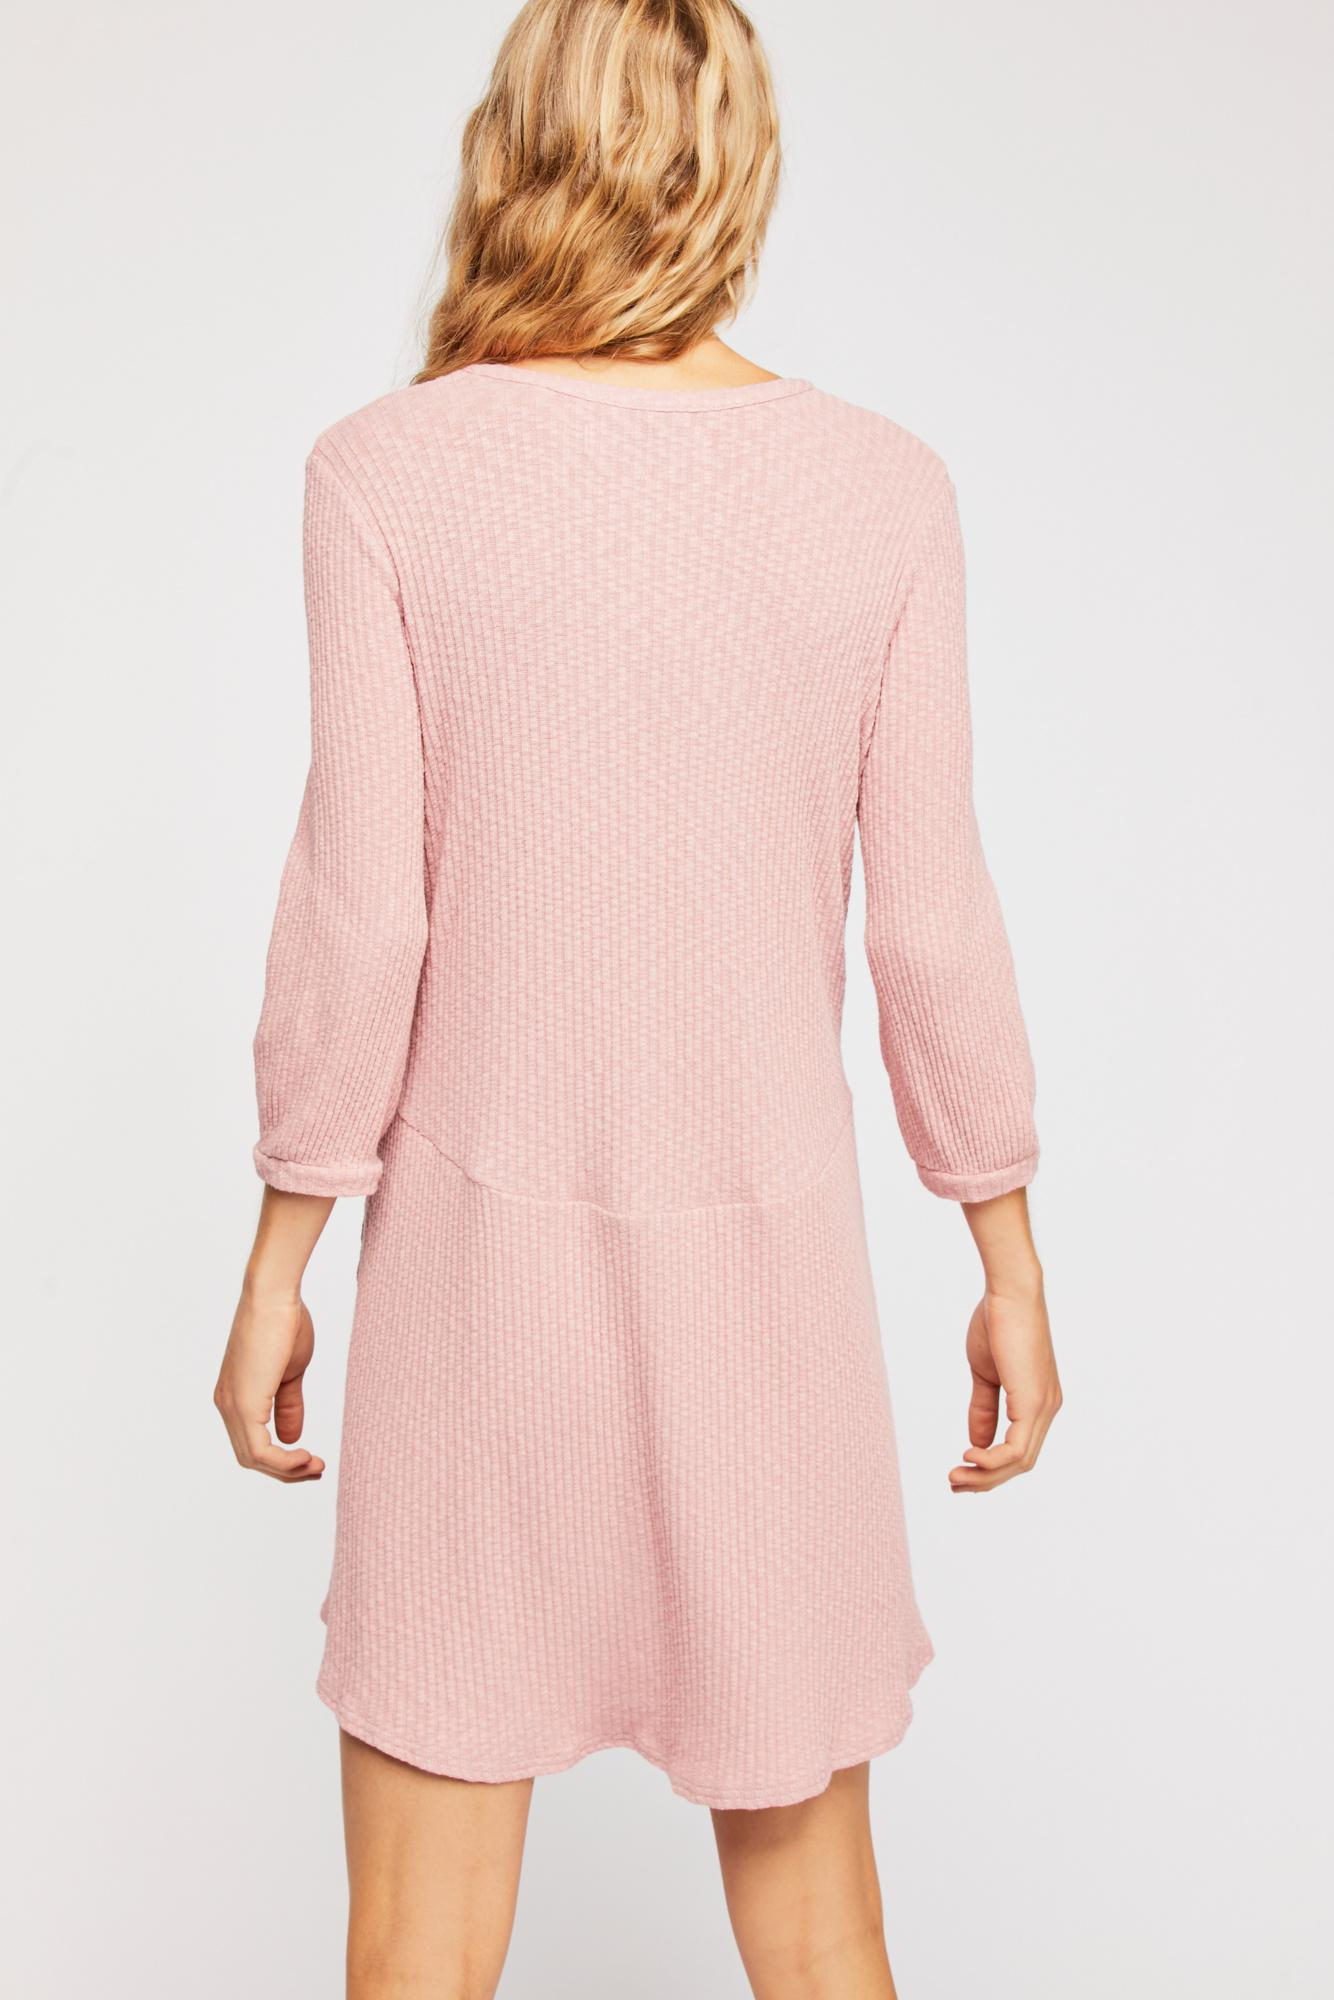 24ce894f315 Free People Blossom Button-up T-shirt Dress By Fp Beach in Pink - Lyst